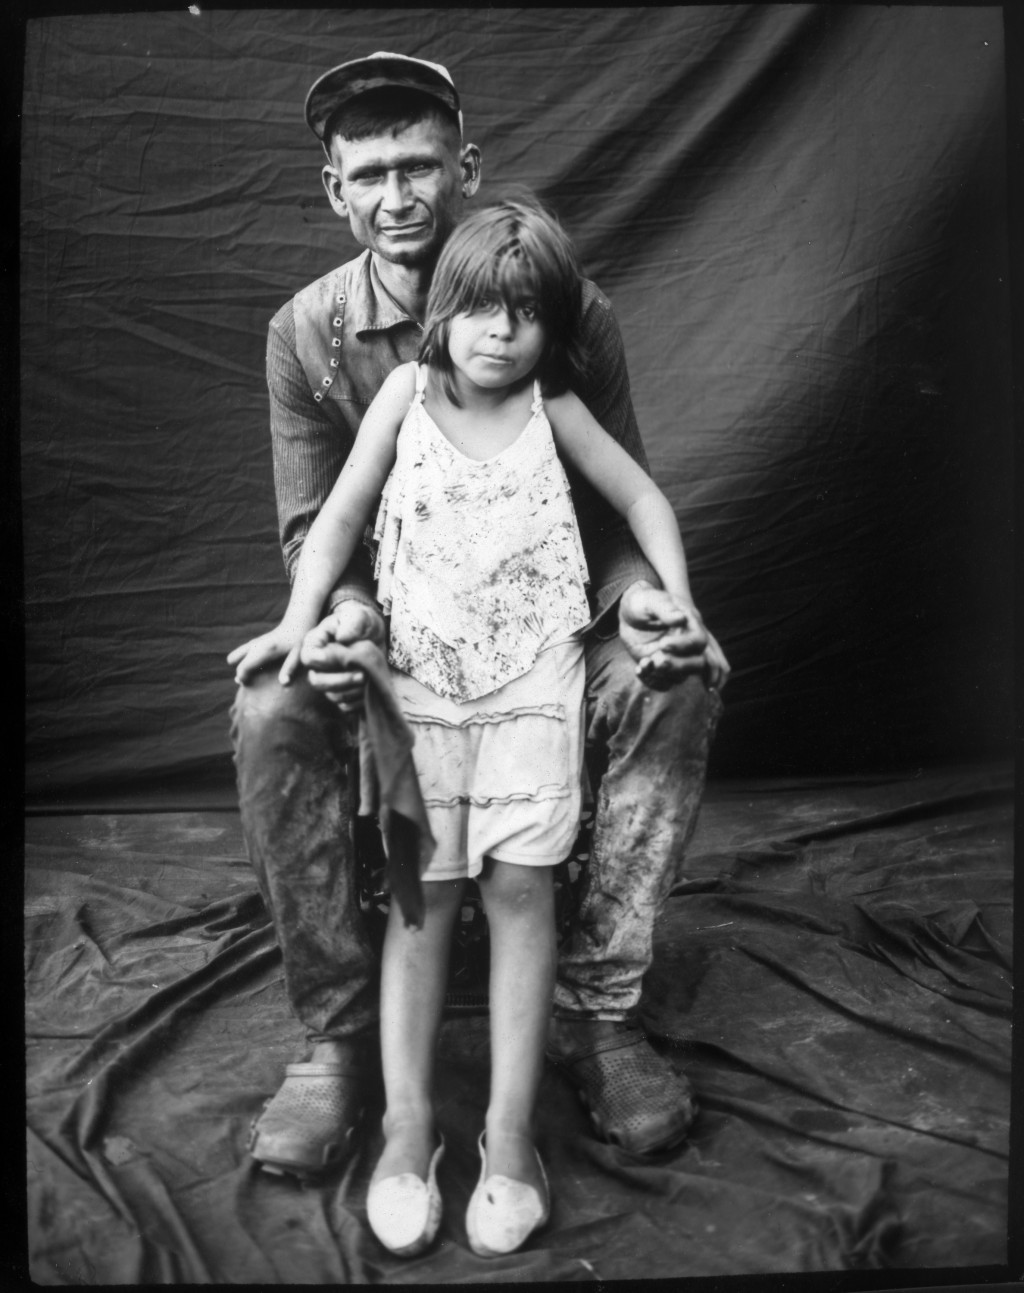 Fisherman Emanuel Salcedo poses for a portrait with his daughter Emilialsen after a day of harvesting crabs from oil-contaminated Lake Maracaibo in Ca